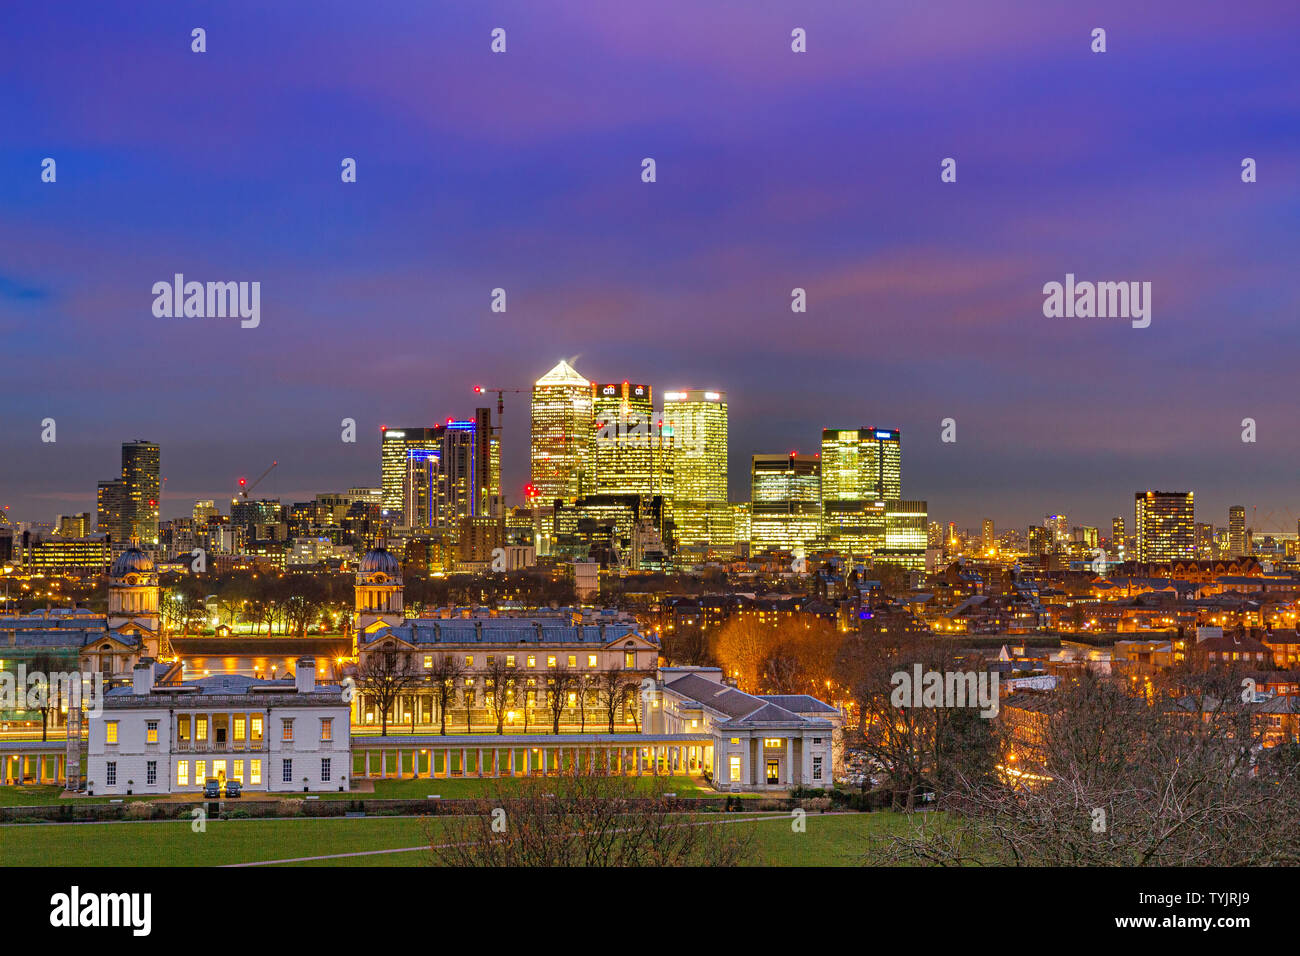 Night view of The Old Royal Naval College & National Maritime Museum with the towers of Canary Wharf in the background  from Greenwich Park ,London Stock Photo